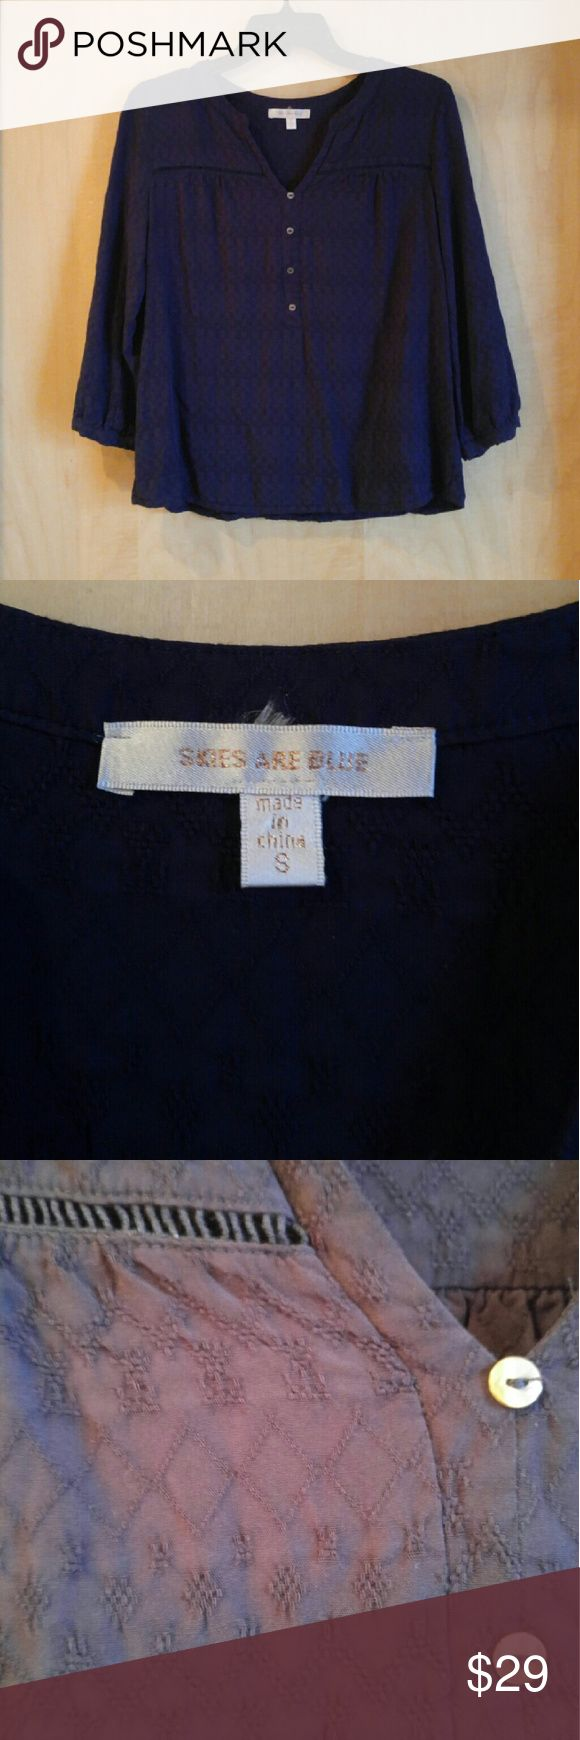 Skies Are Blue Navy Boho Flowy Blouse Skies Are Blue blouse, size small, in excellent condition! Features an embroidered print (see 3rd photo), buttons half way down, and tab button option for rolling up sleeves. Boxy boho fit. Please ask any questions. No trades. Make a reasonable offer. Thanks! Skies Are Blue Tops Blouses